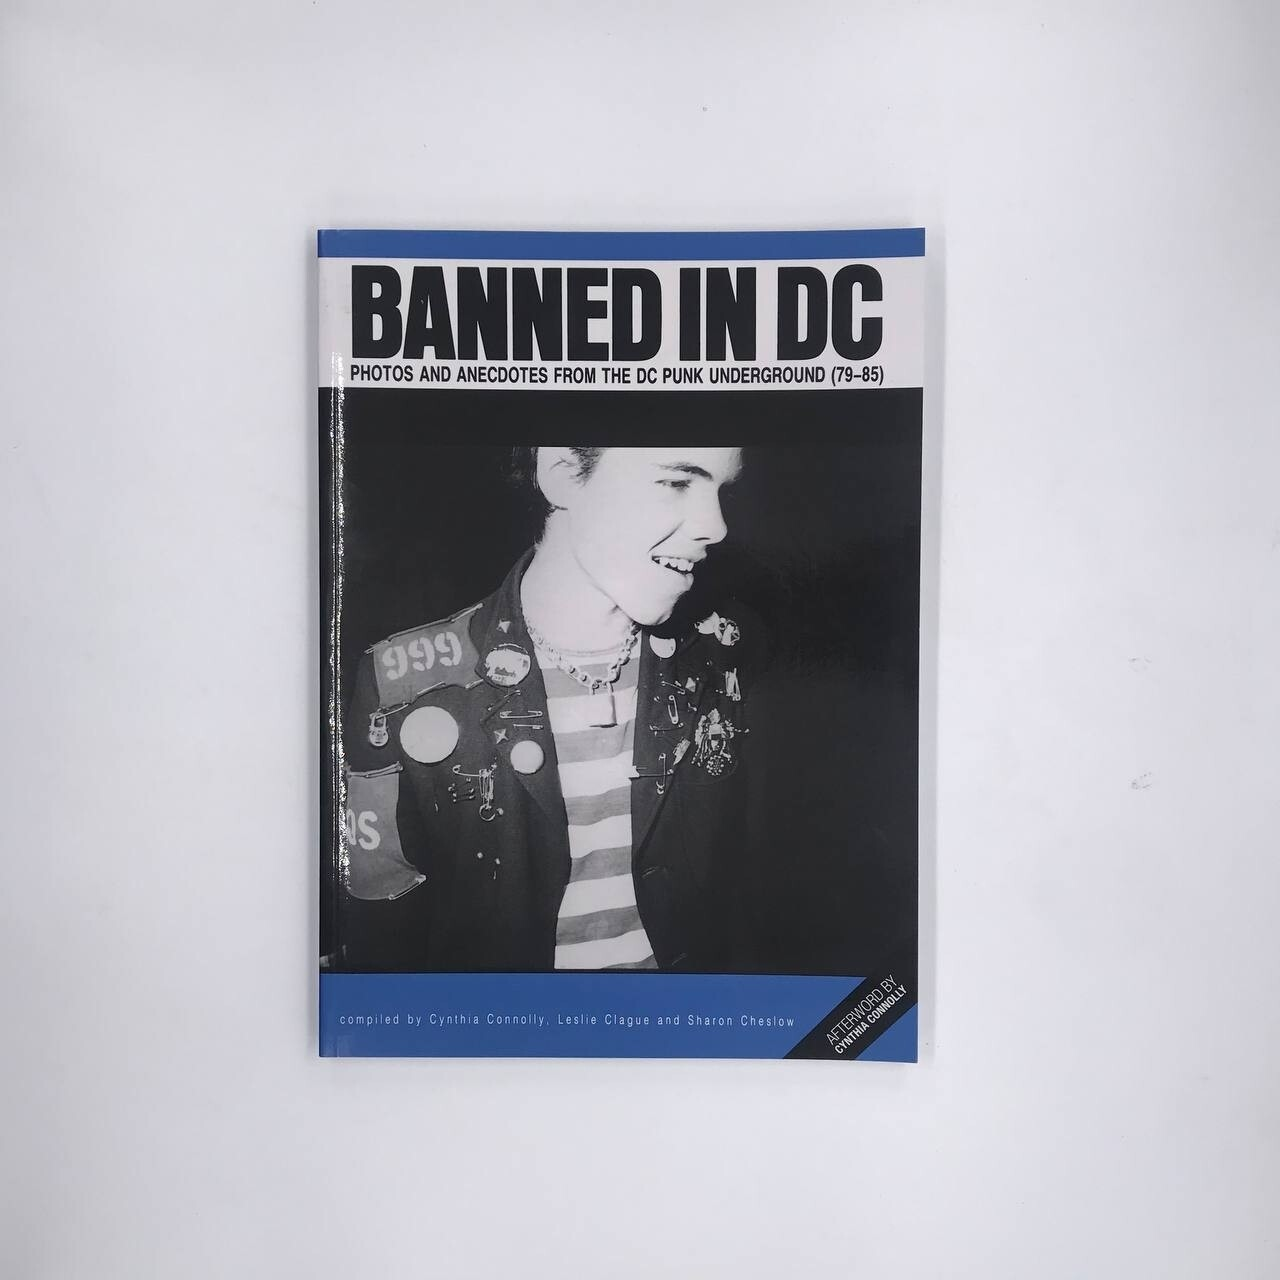 BANNED IN DC -PHOTOS AND ANECDOTES FROM THE DC PUNK UNDERGROUND (79-85)- BOOK